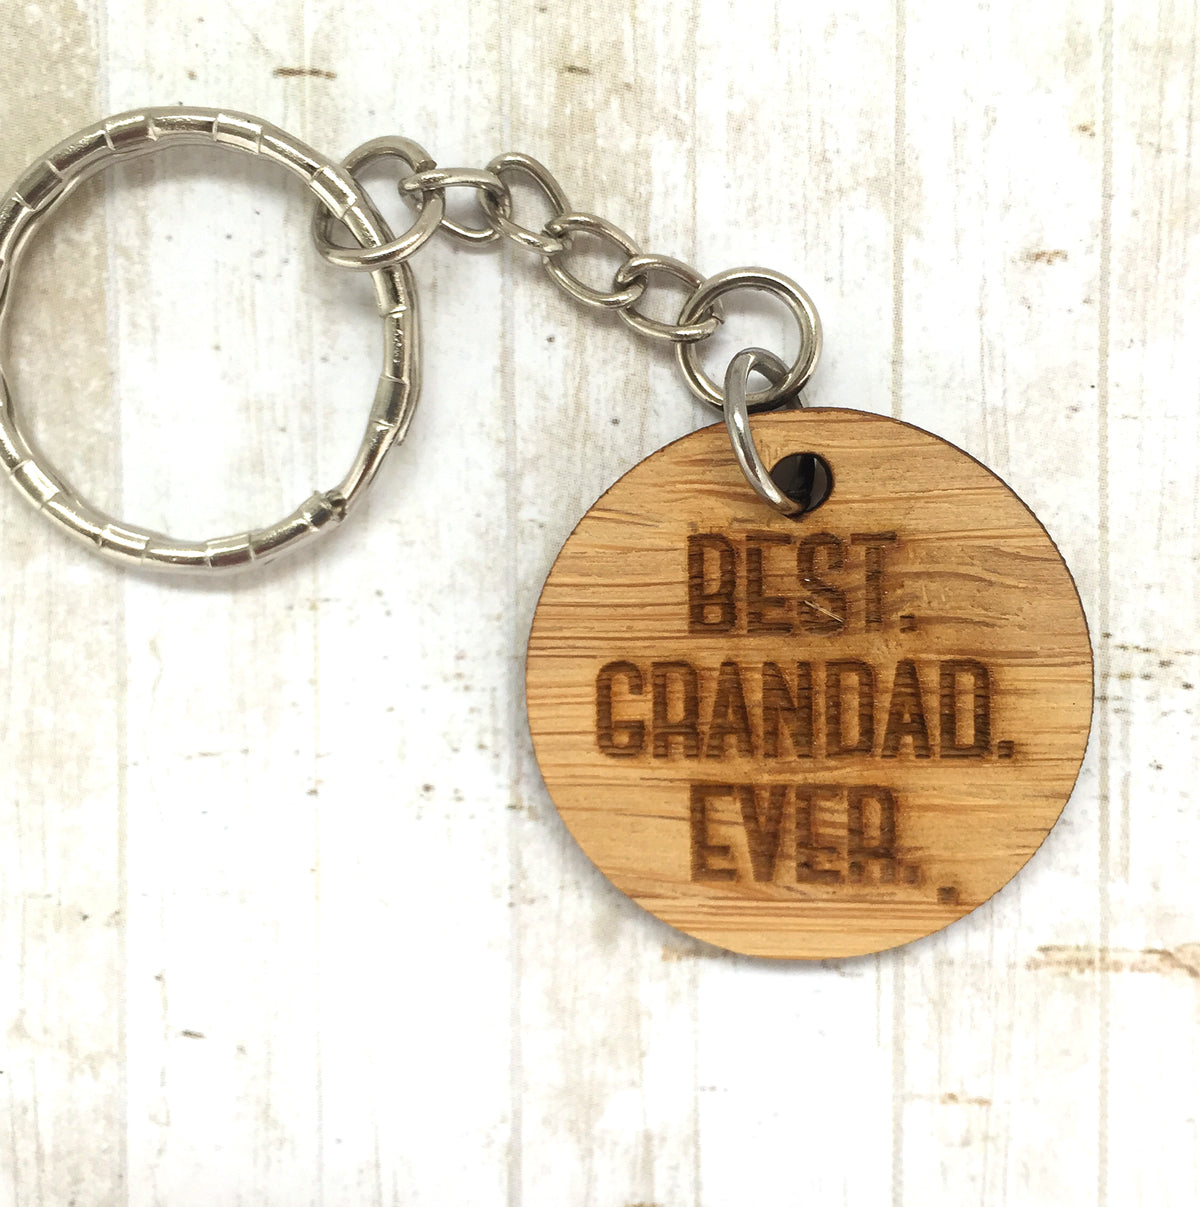 Tag Keyring - Best Grandad Ever